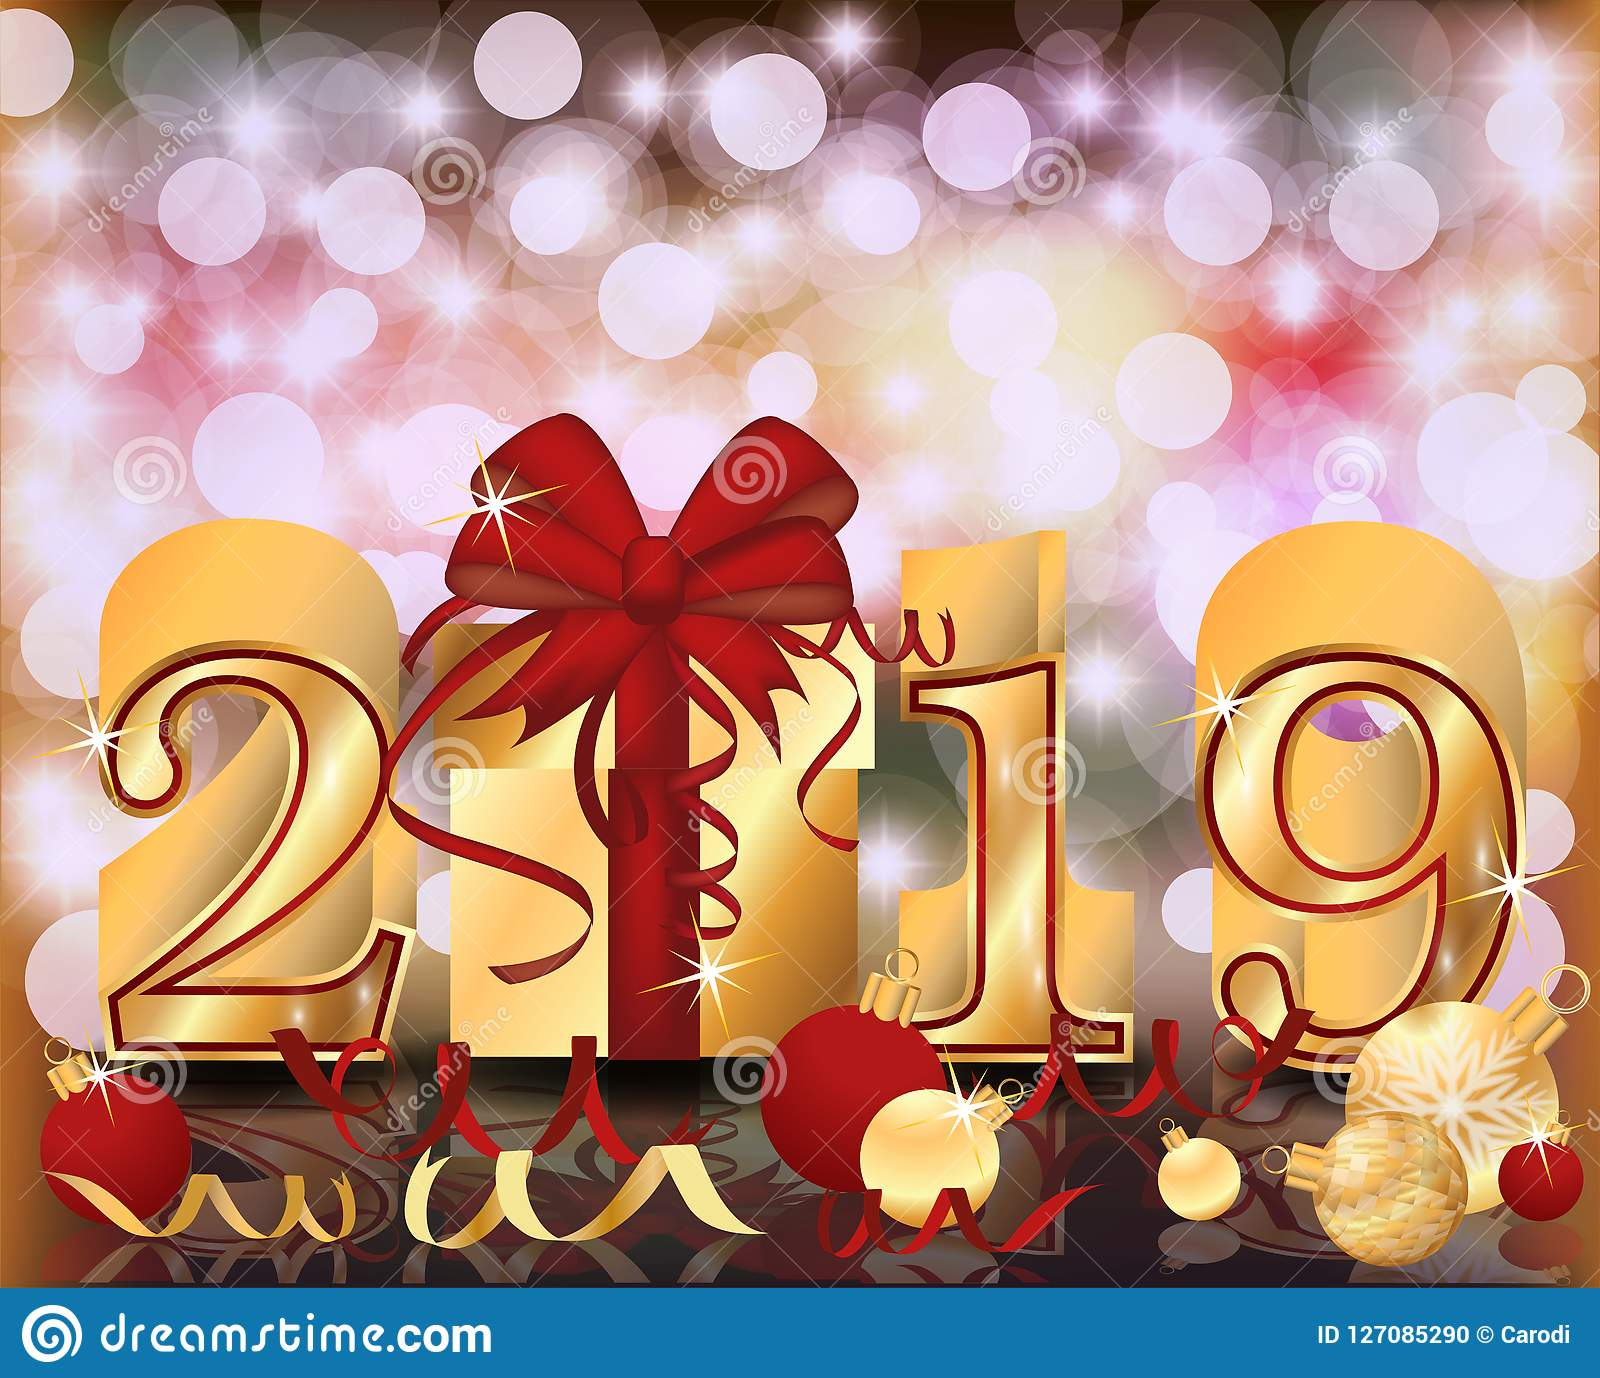 Happy 2019 >> Merry Christmas Happy 2019 New Year Golden Banner Vector Stock